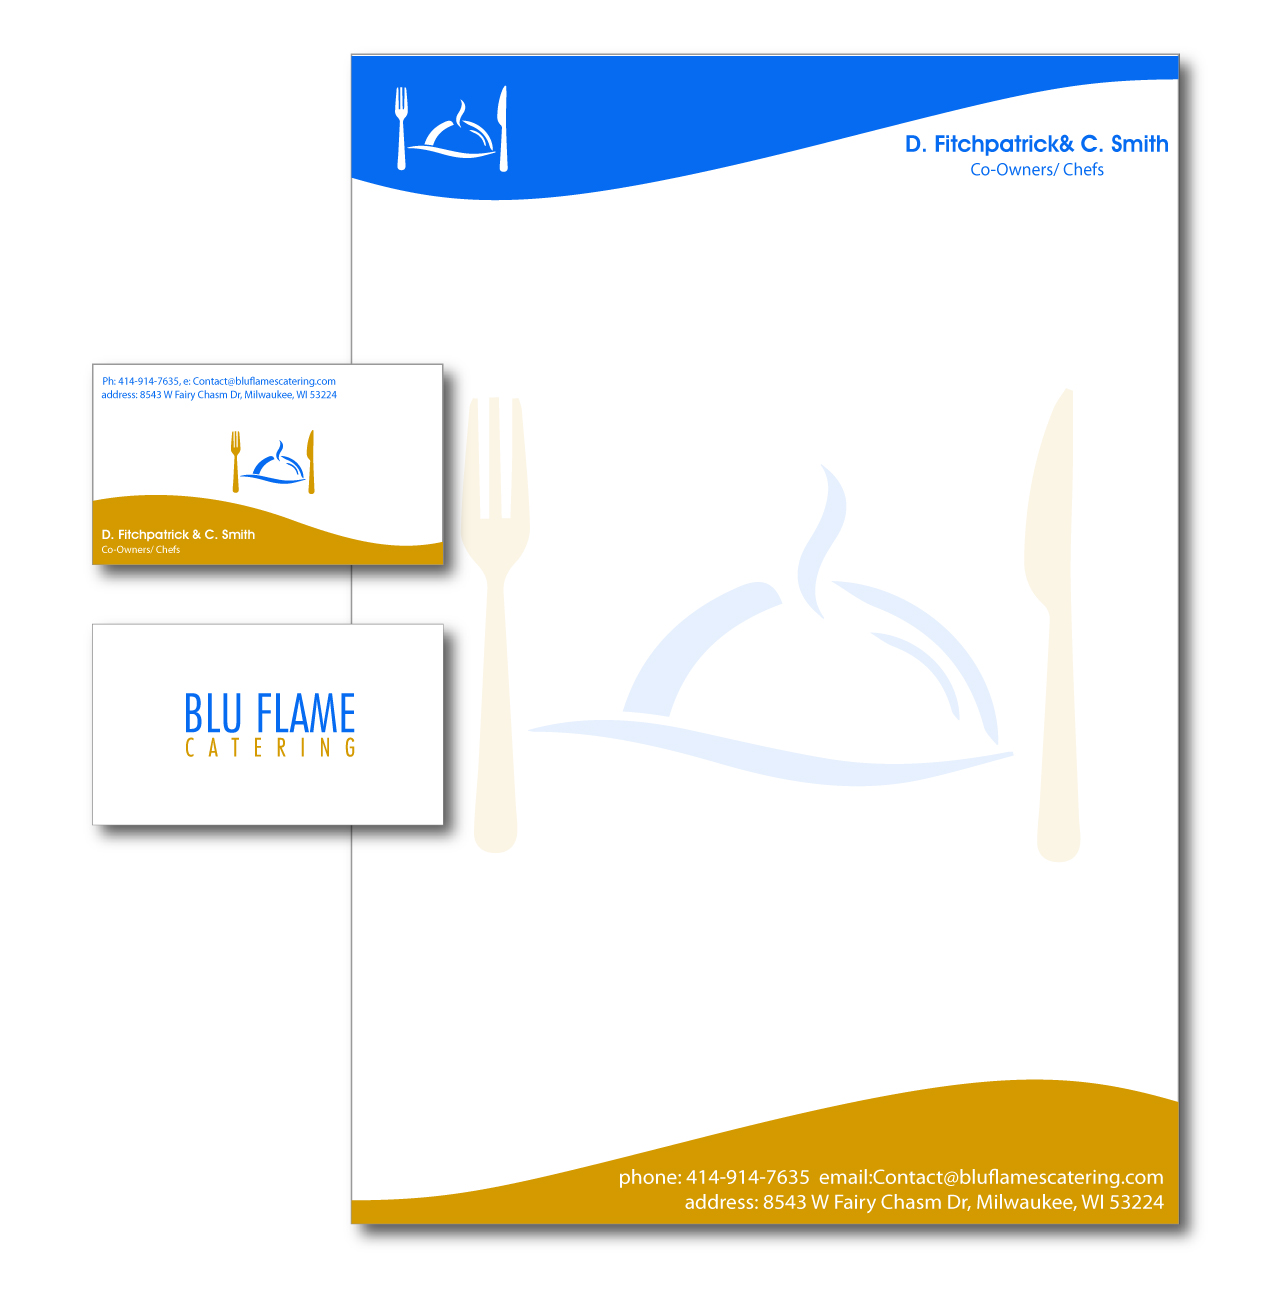 Professional, Masculine Letterhead Design for Blu Flame Catering